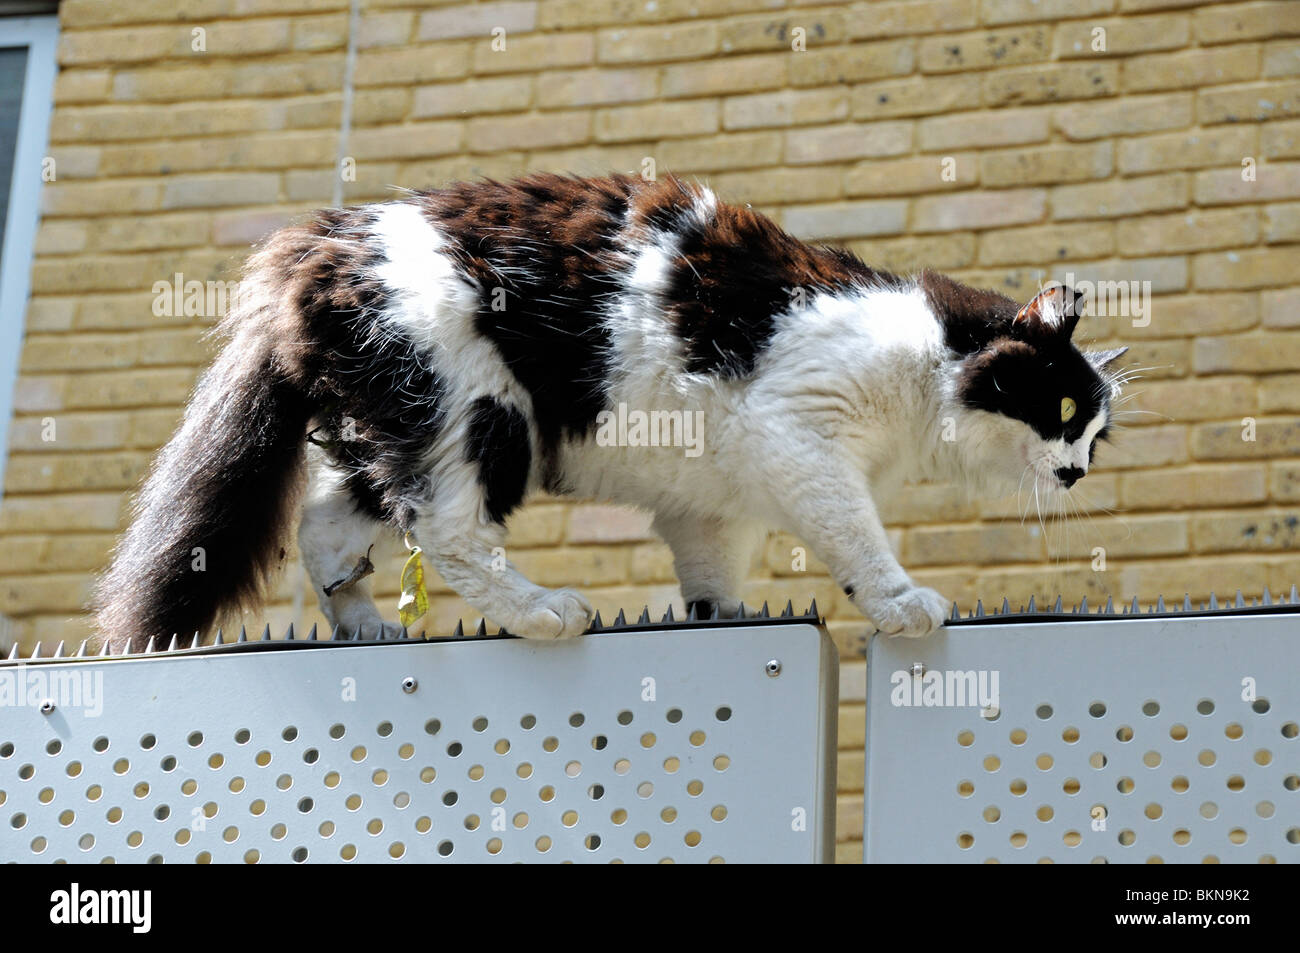 Black and White long haired domestic cat walking acroos the top of a spiked gate London England UK - Stock Image